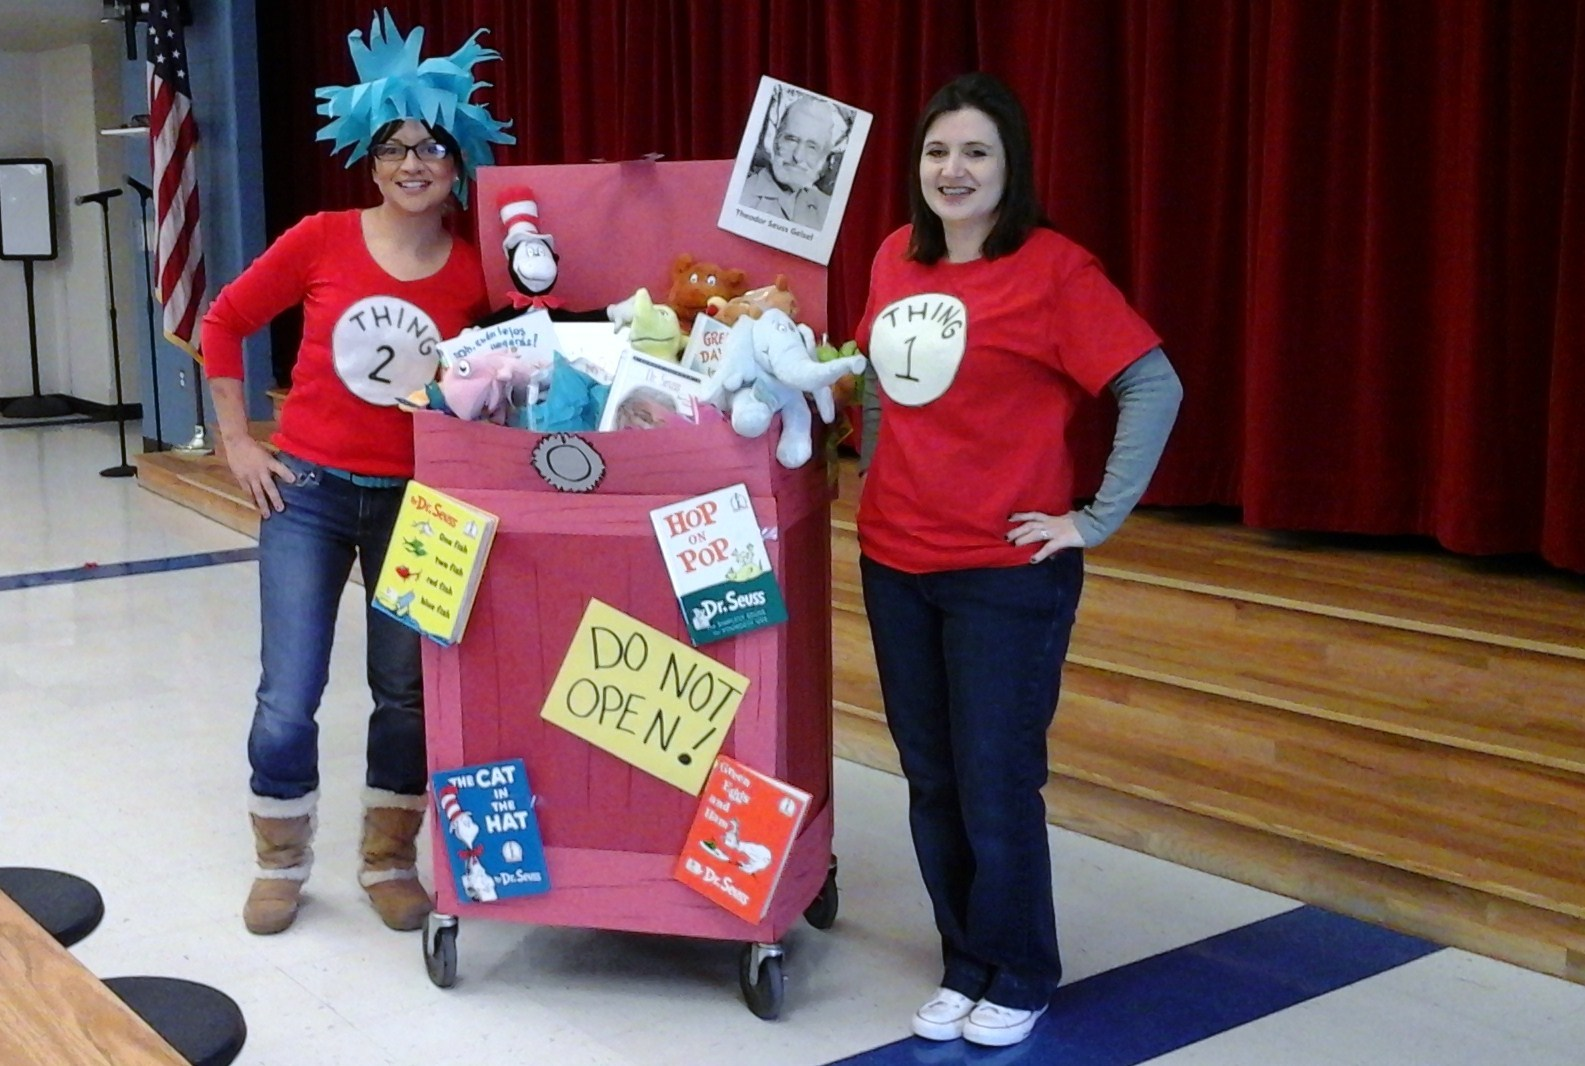 Librarian and clerk dressed up for Dr. Seuss week.